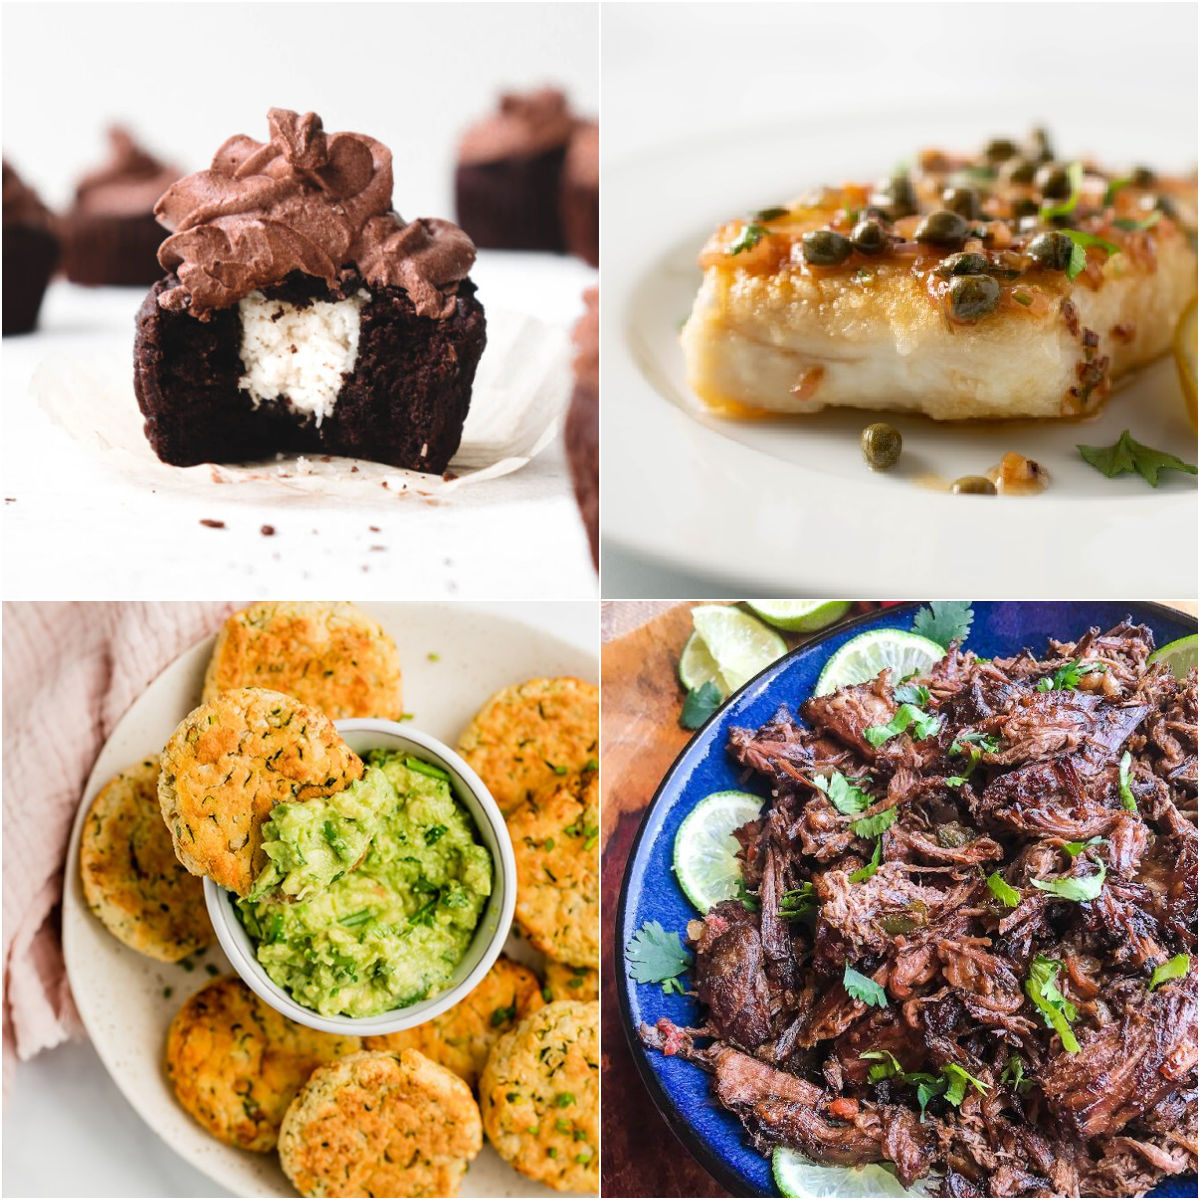 Paleo AIP Recipe Roundtable #353 | Phoenix Helix - *Featured Recipes: Peppermint Patty Cupcakes, Baked Veggie Nuggets, Slow Cooker Shredded Beef, and Halibut with Lemon Caper Sauce